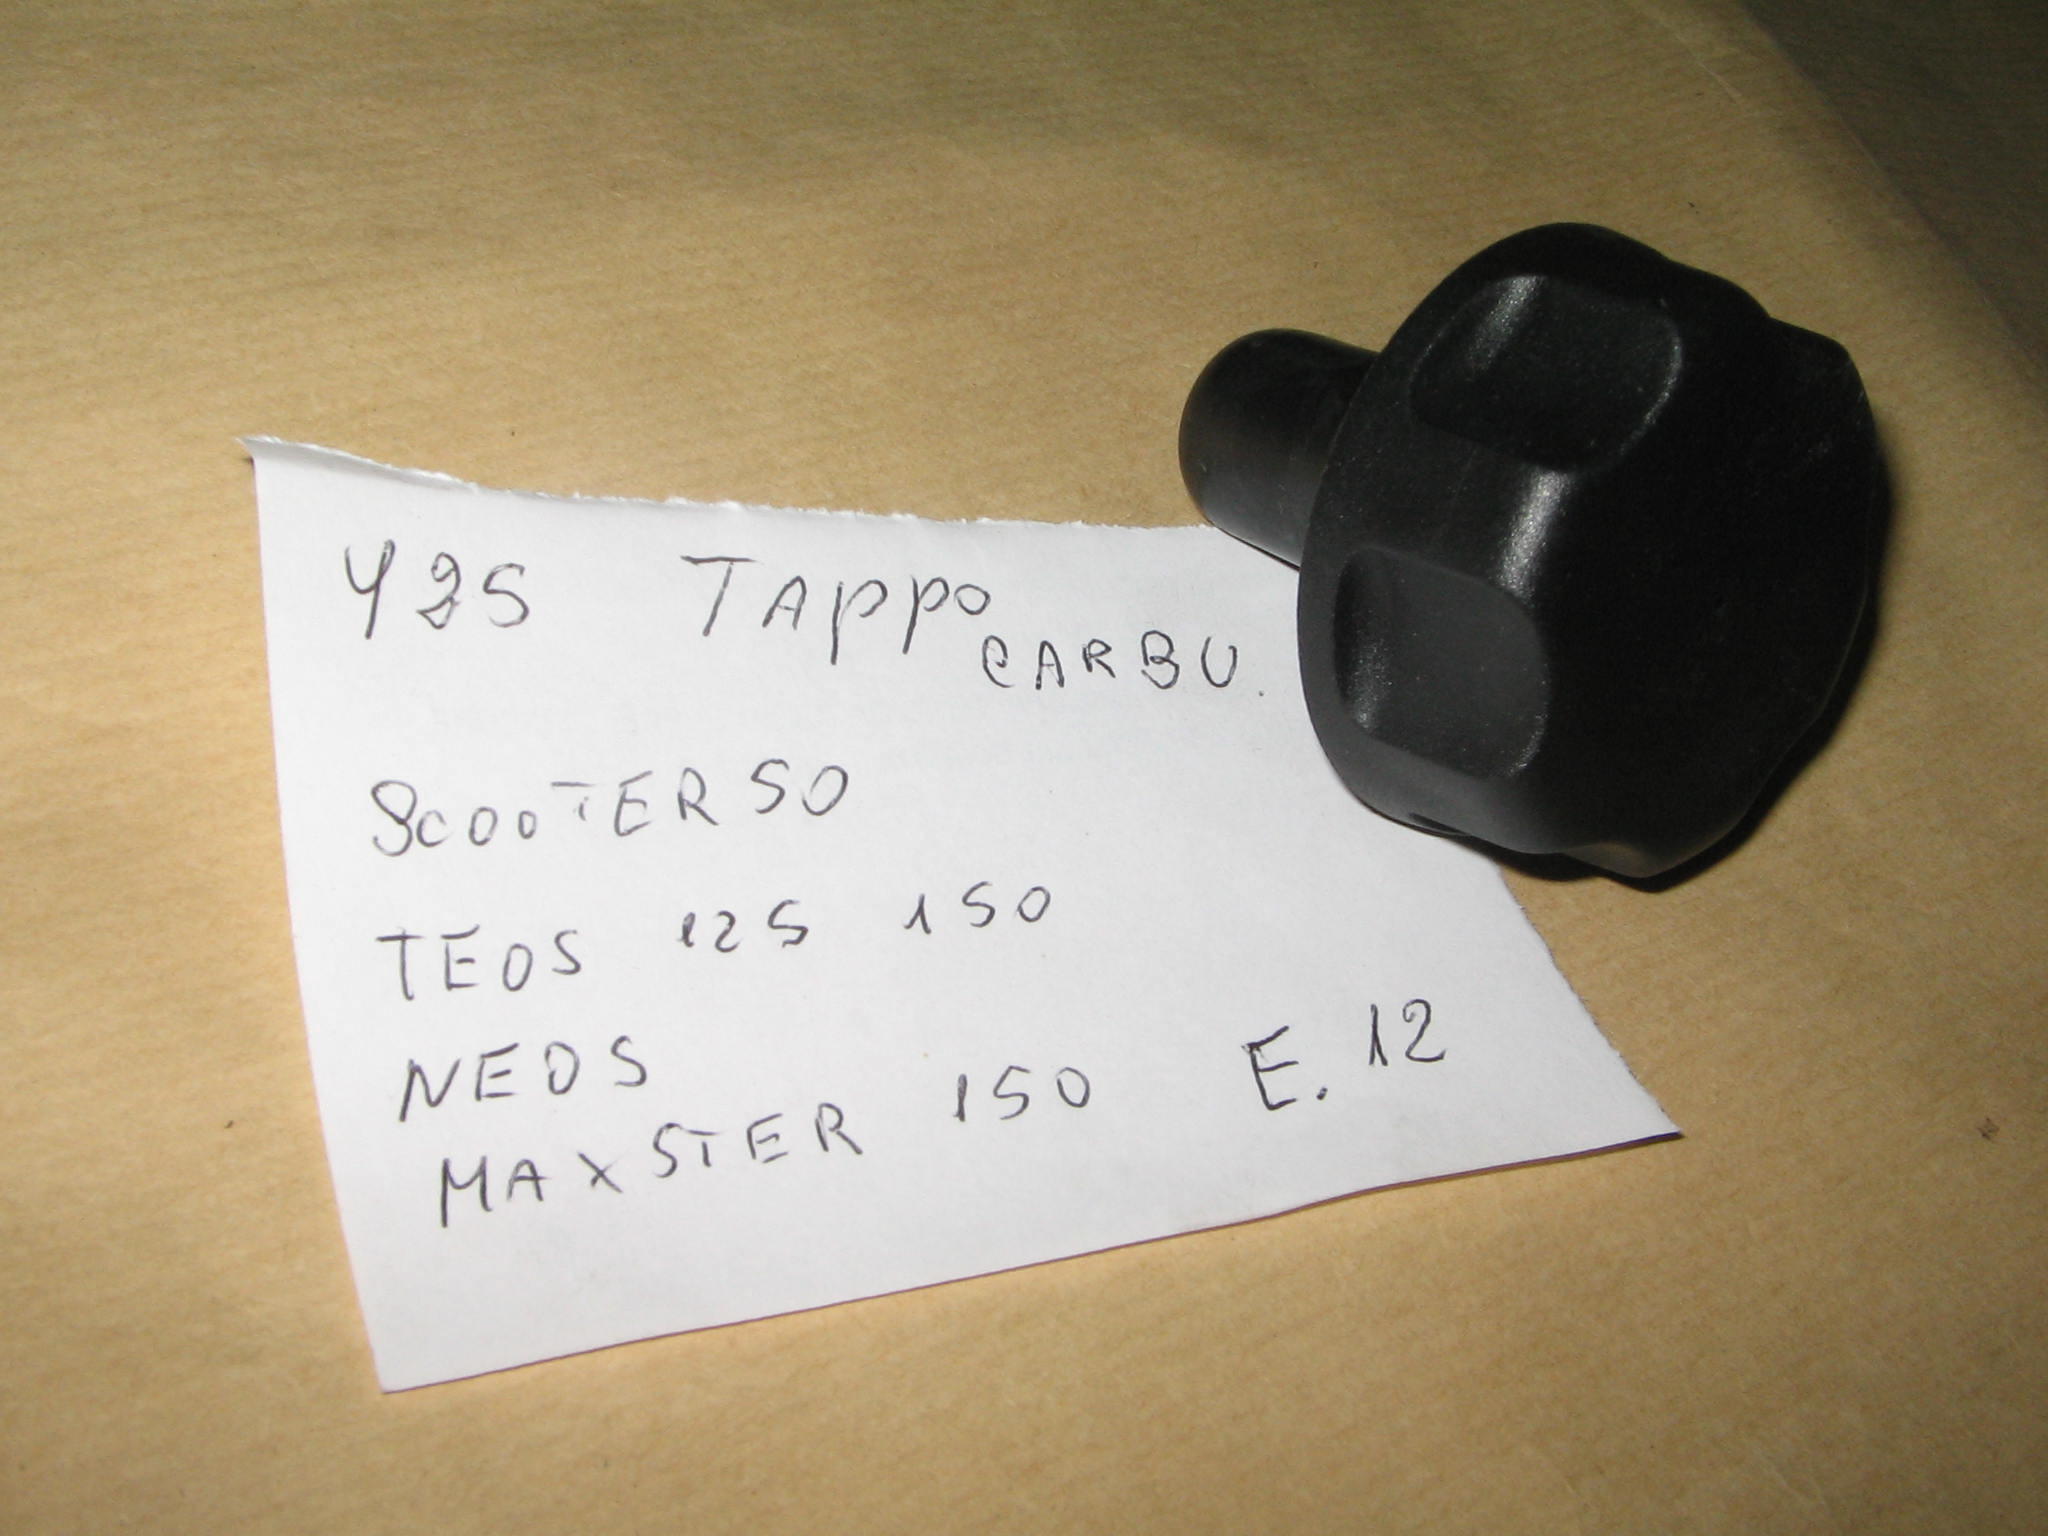 TAPPO CARBURANTE N.1208